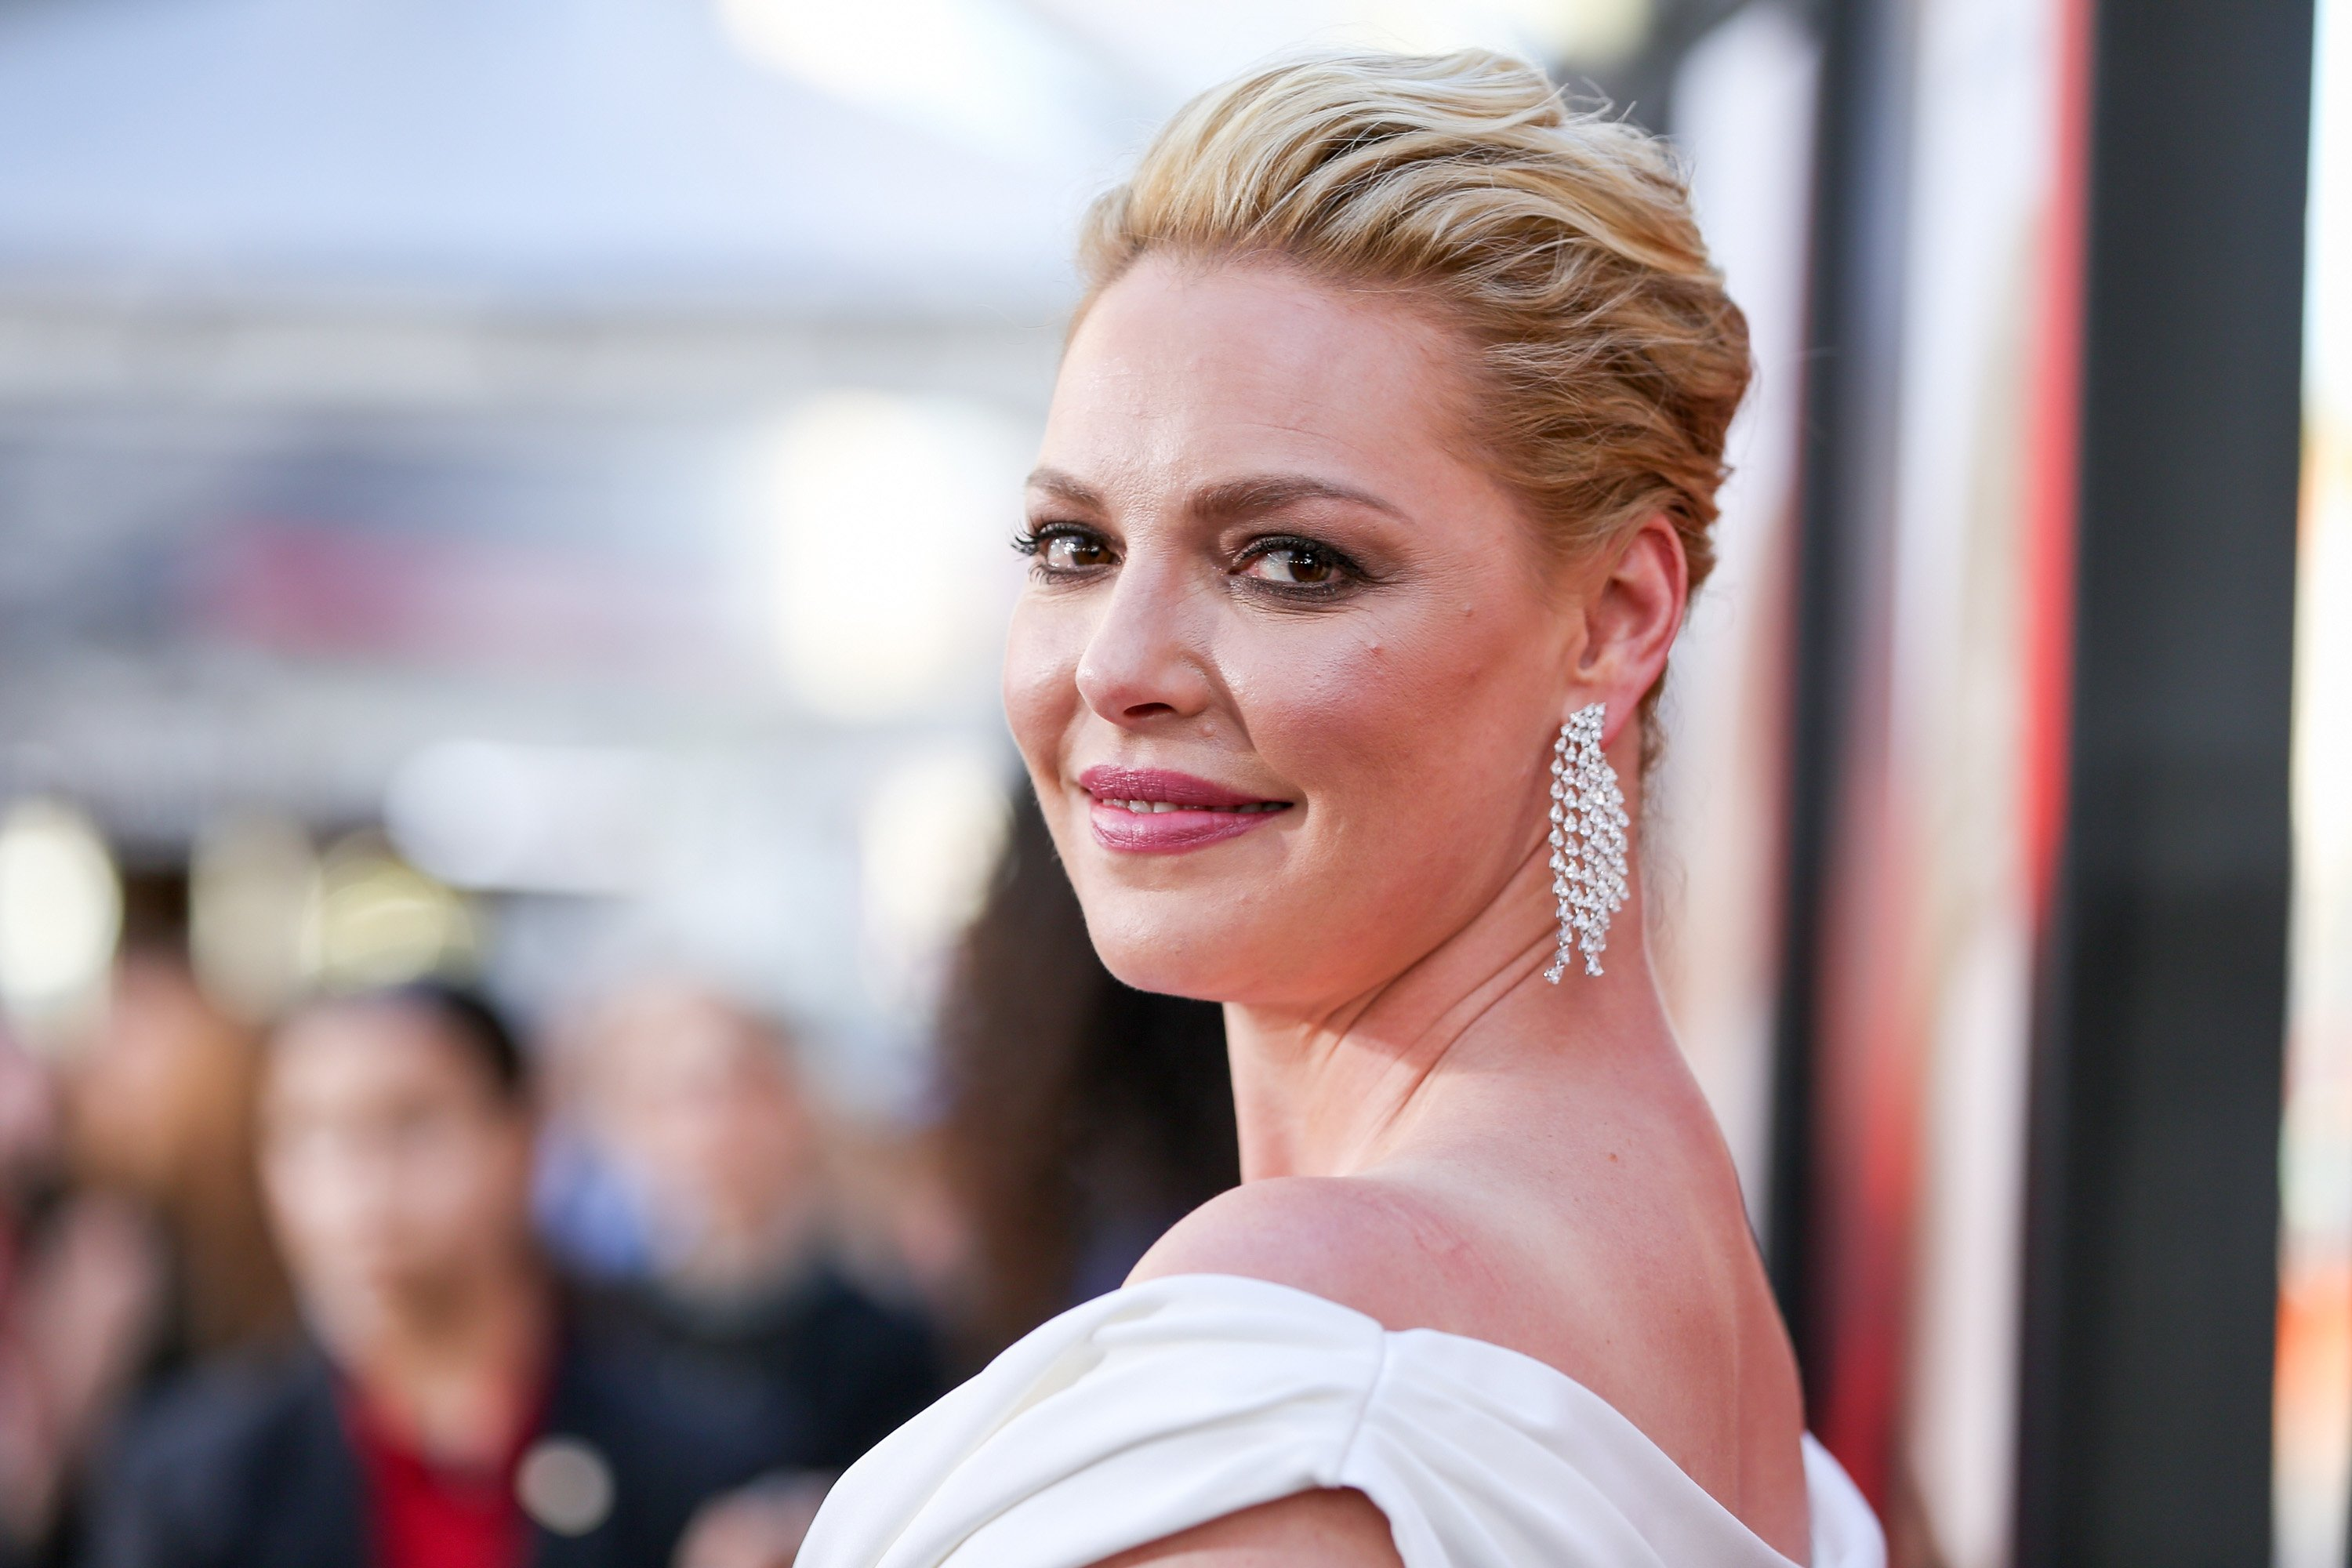 Image Credits: Getty Images | Katherine Heigl received an Emmy for her role as Izzie Stevens